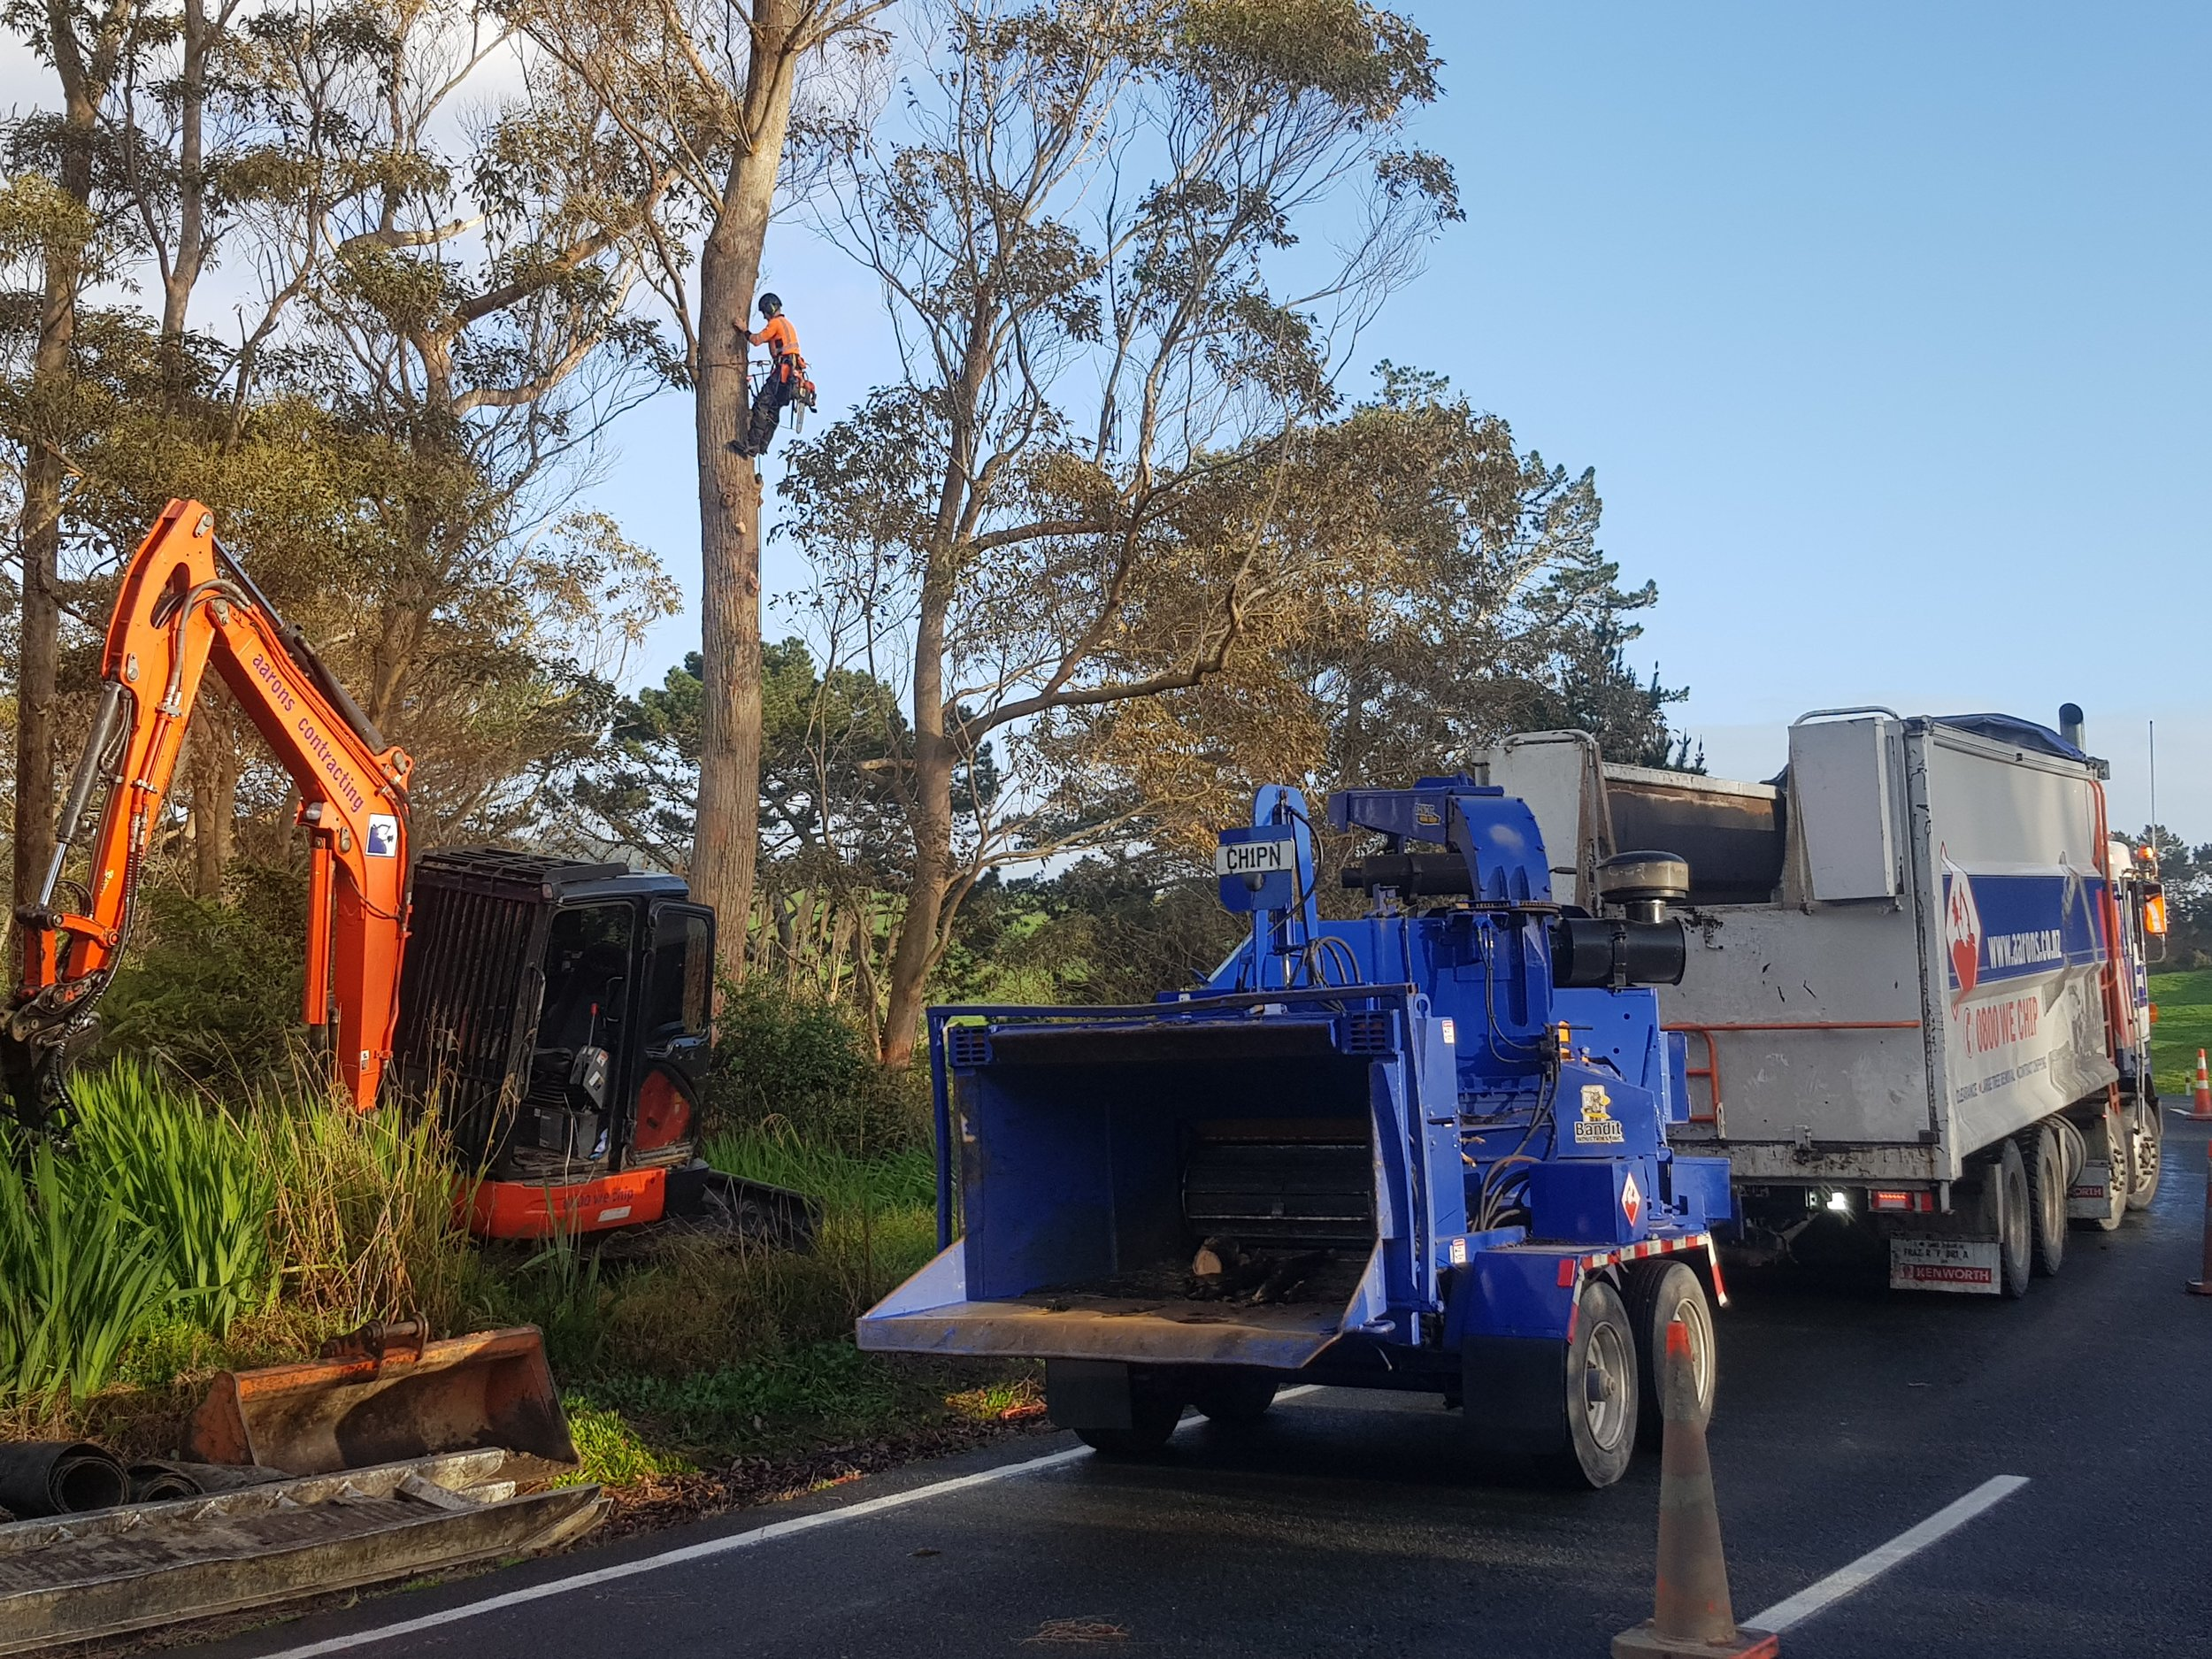 Whole tree chipper, digger and large truck from Aarons contracting